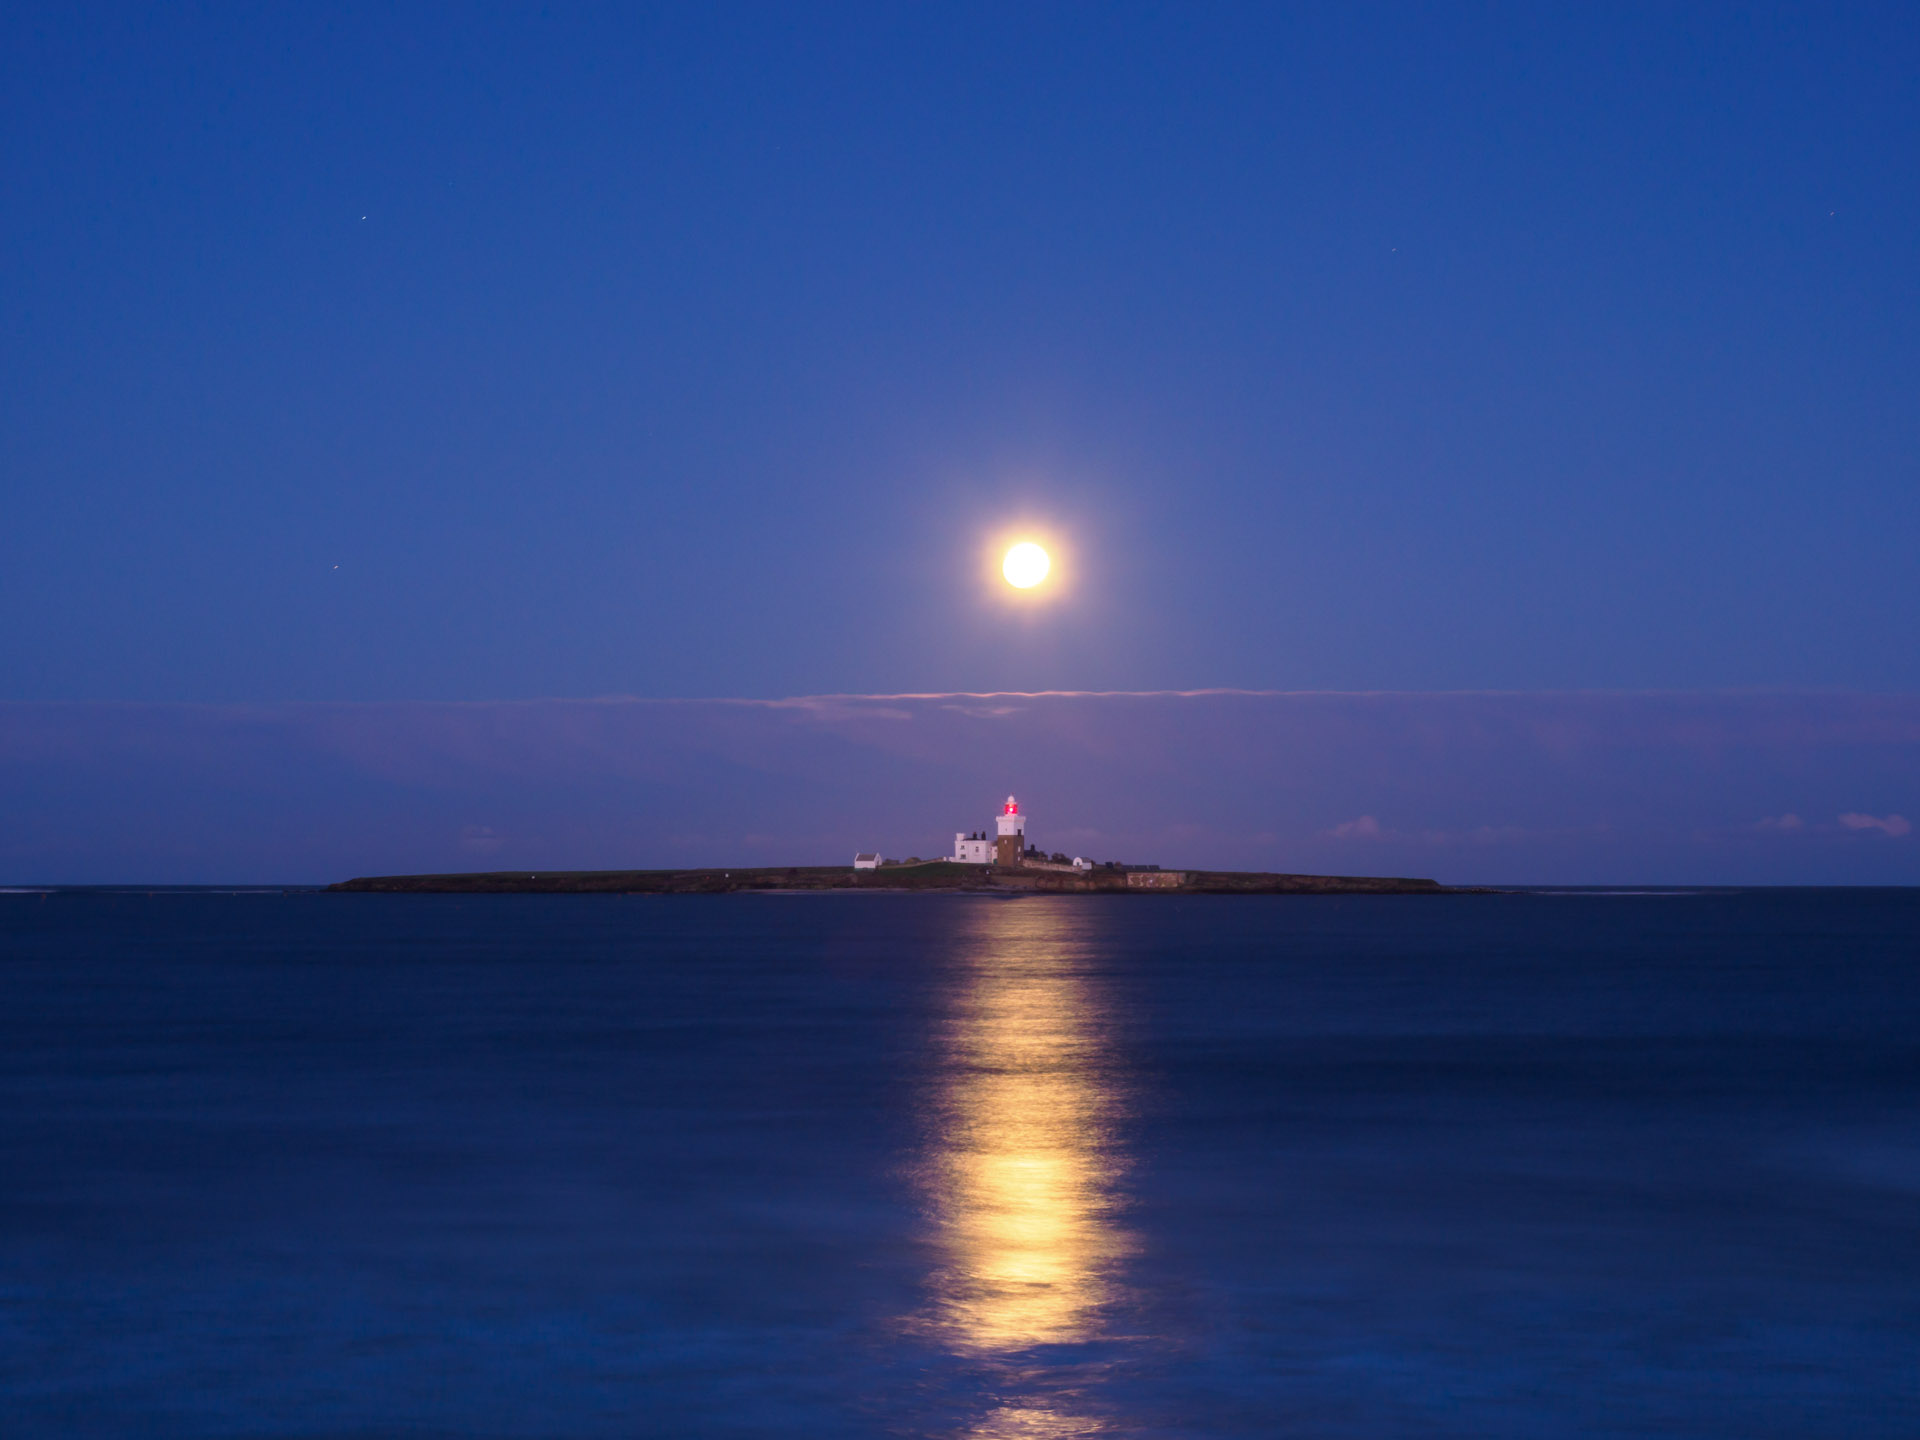 Websites Galore - Shedding a little light! Lighthouse on an island with a rising moon